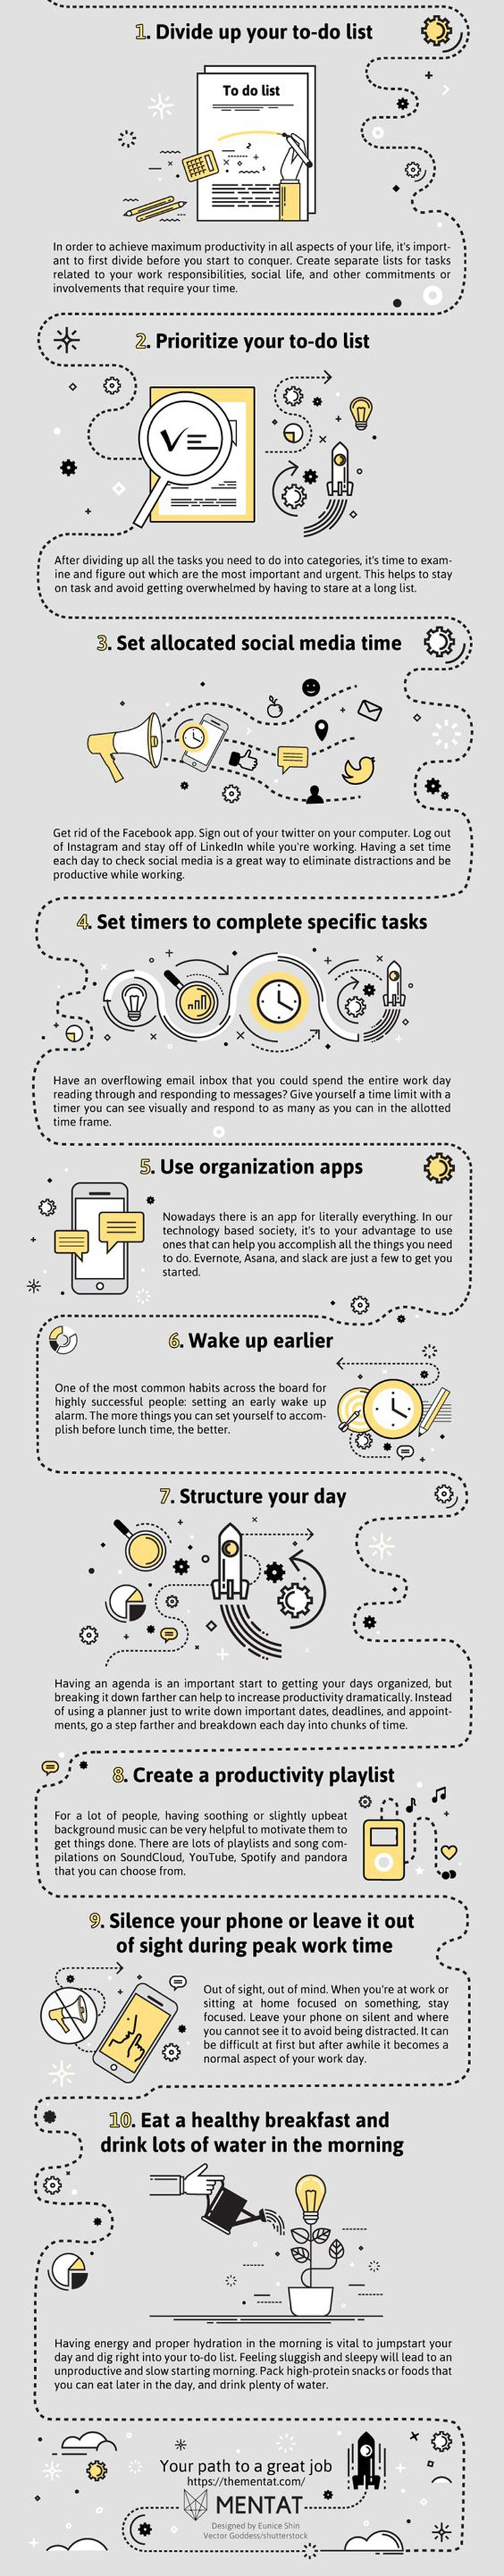 How To Make Each Day As Productive As Possible | Daily Infographic